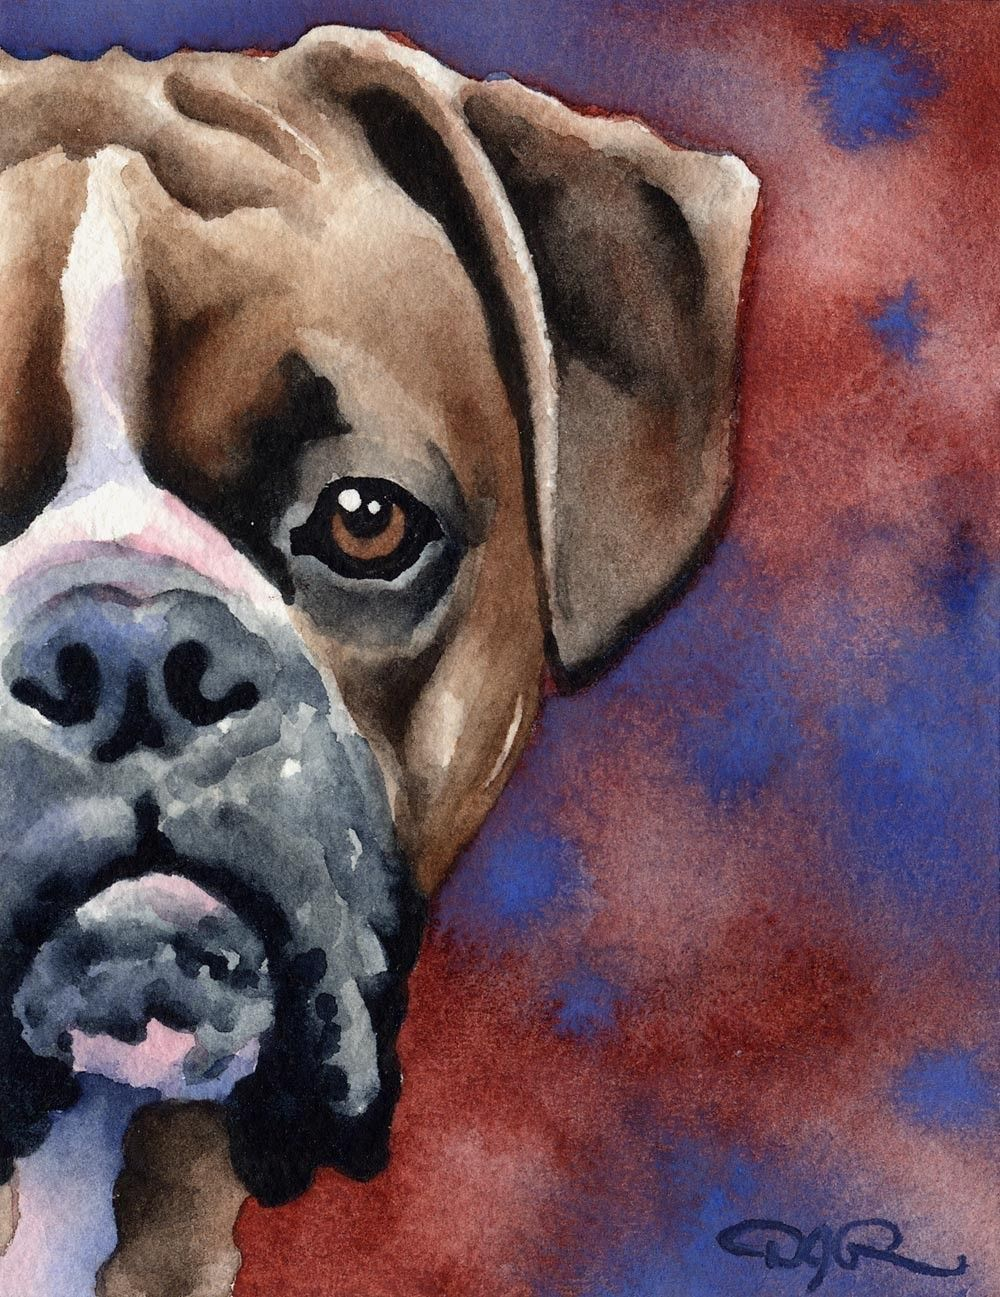 Bulldog Abstract Watercolor Painting Art Print by Artist DJ Rogers